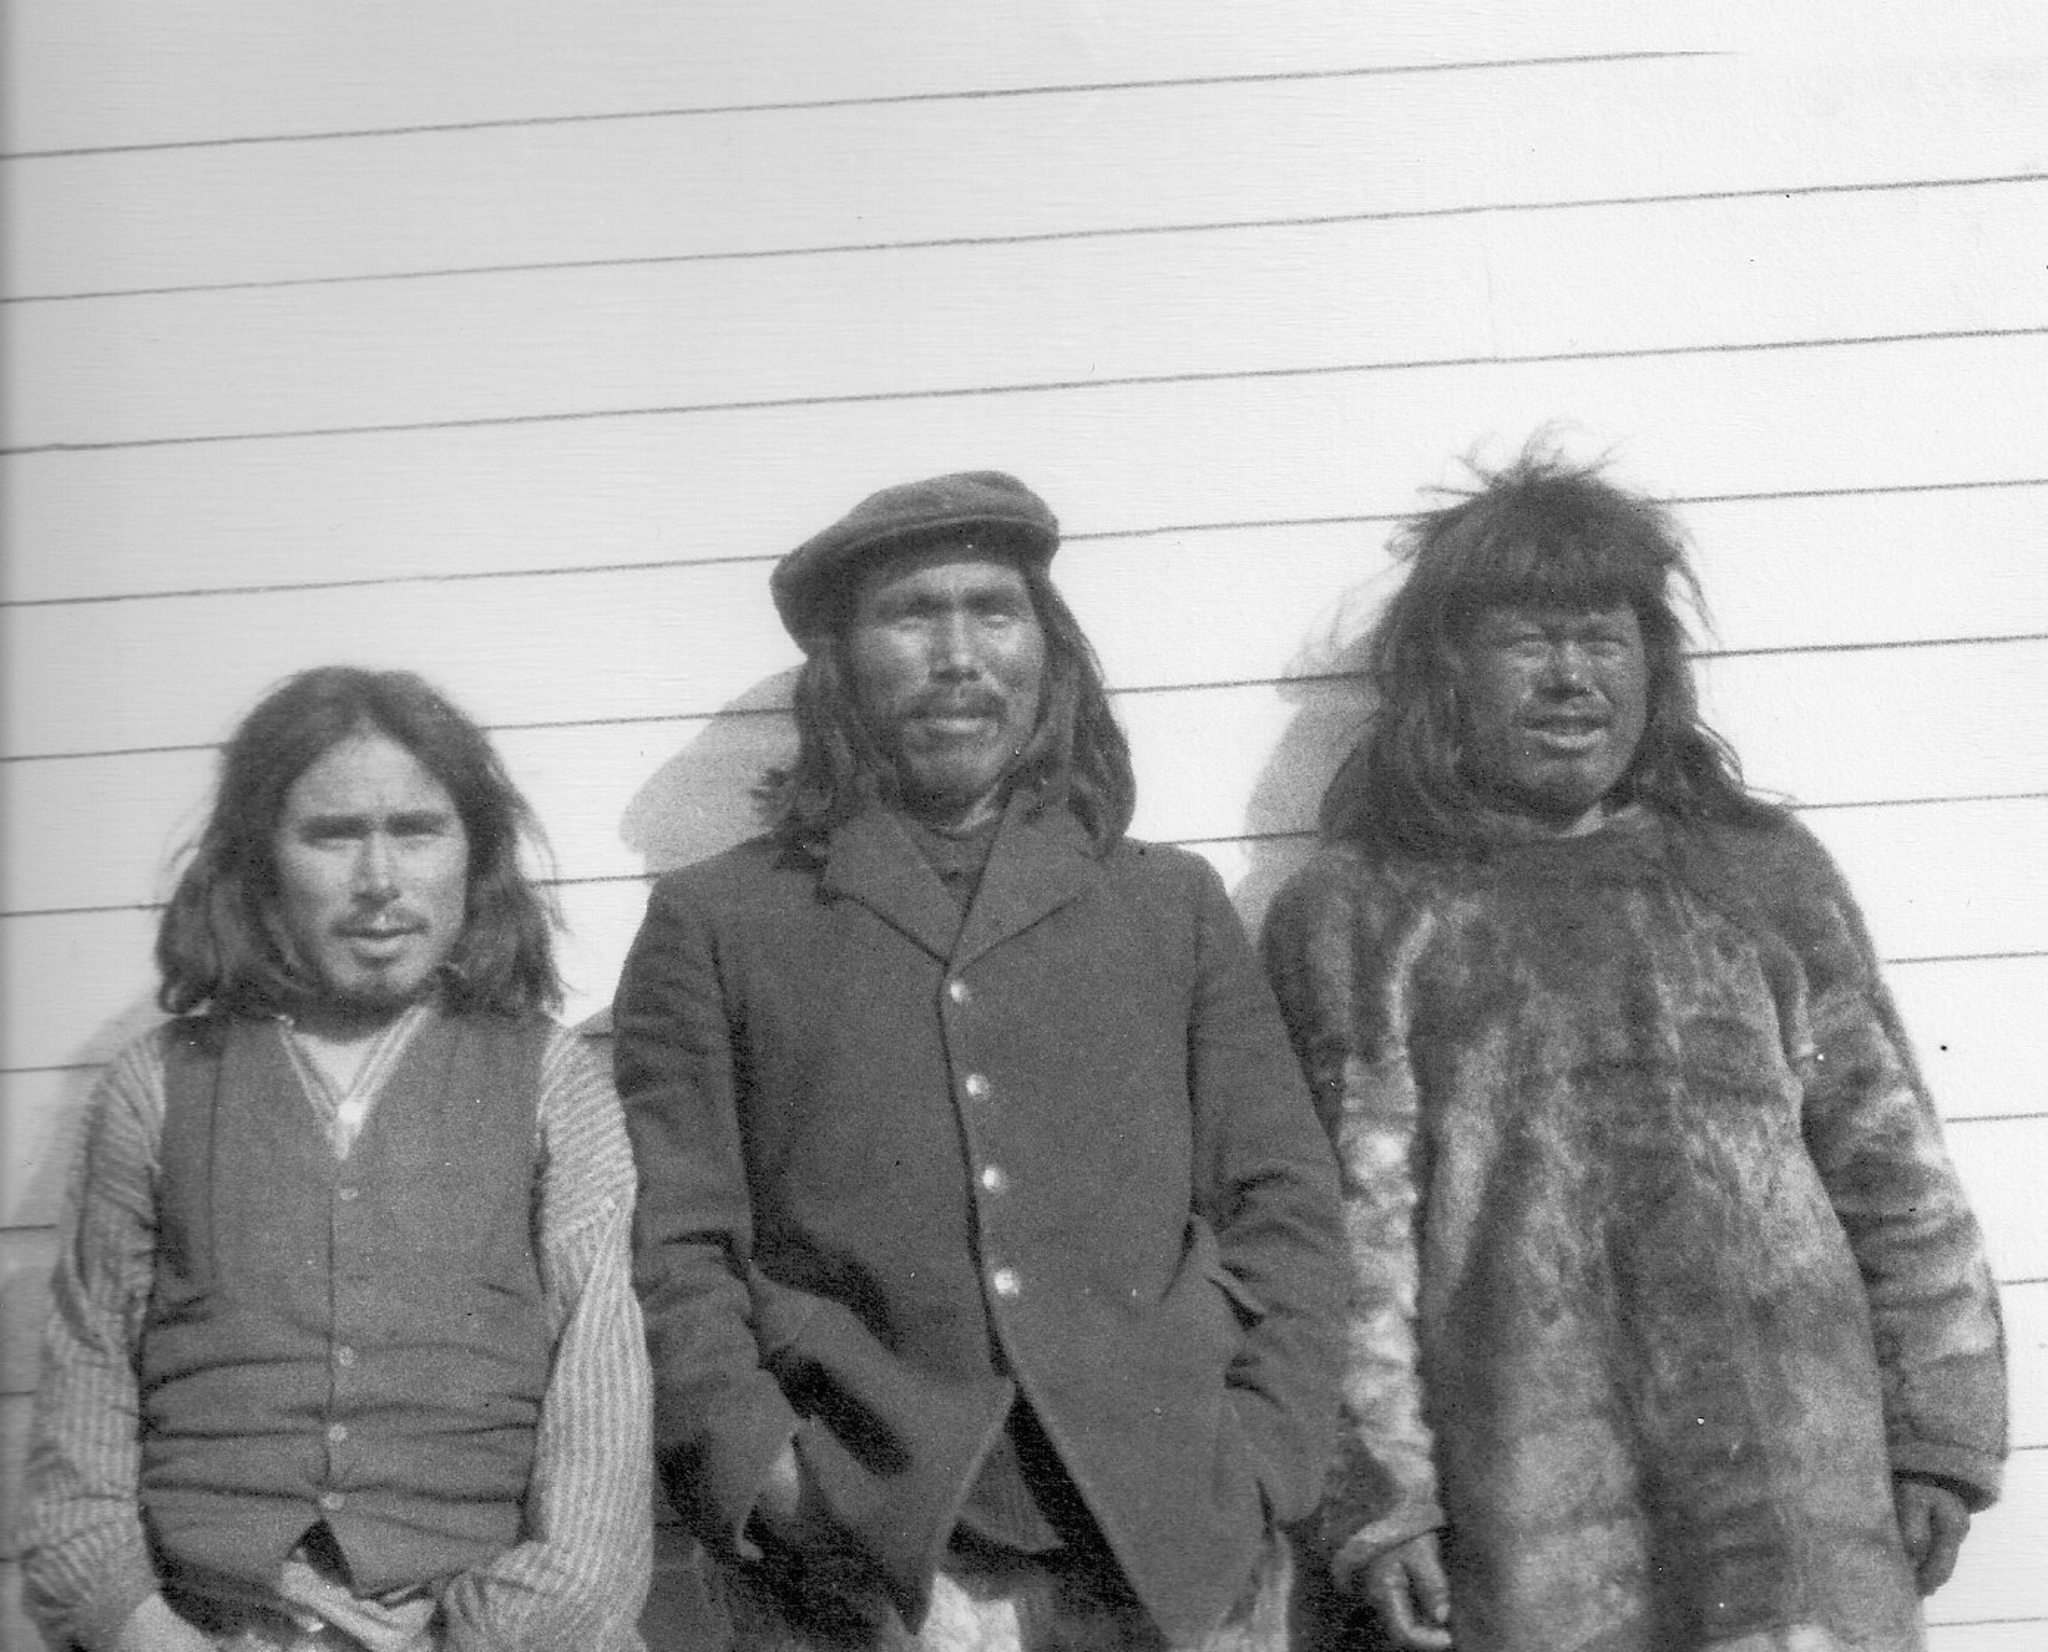 <p>The three accused men (from left) Aatitaaq, Nuqallaq and Ululijarnaaq.</p></p>